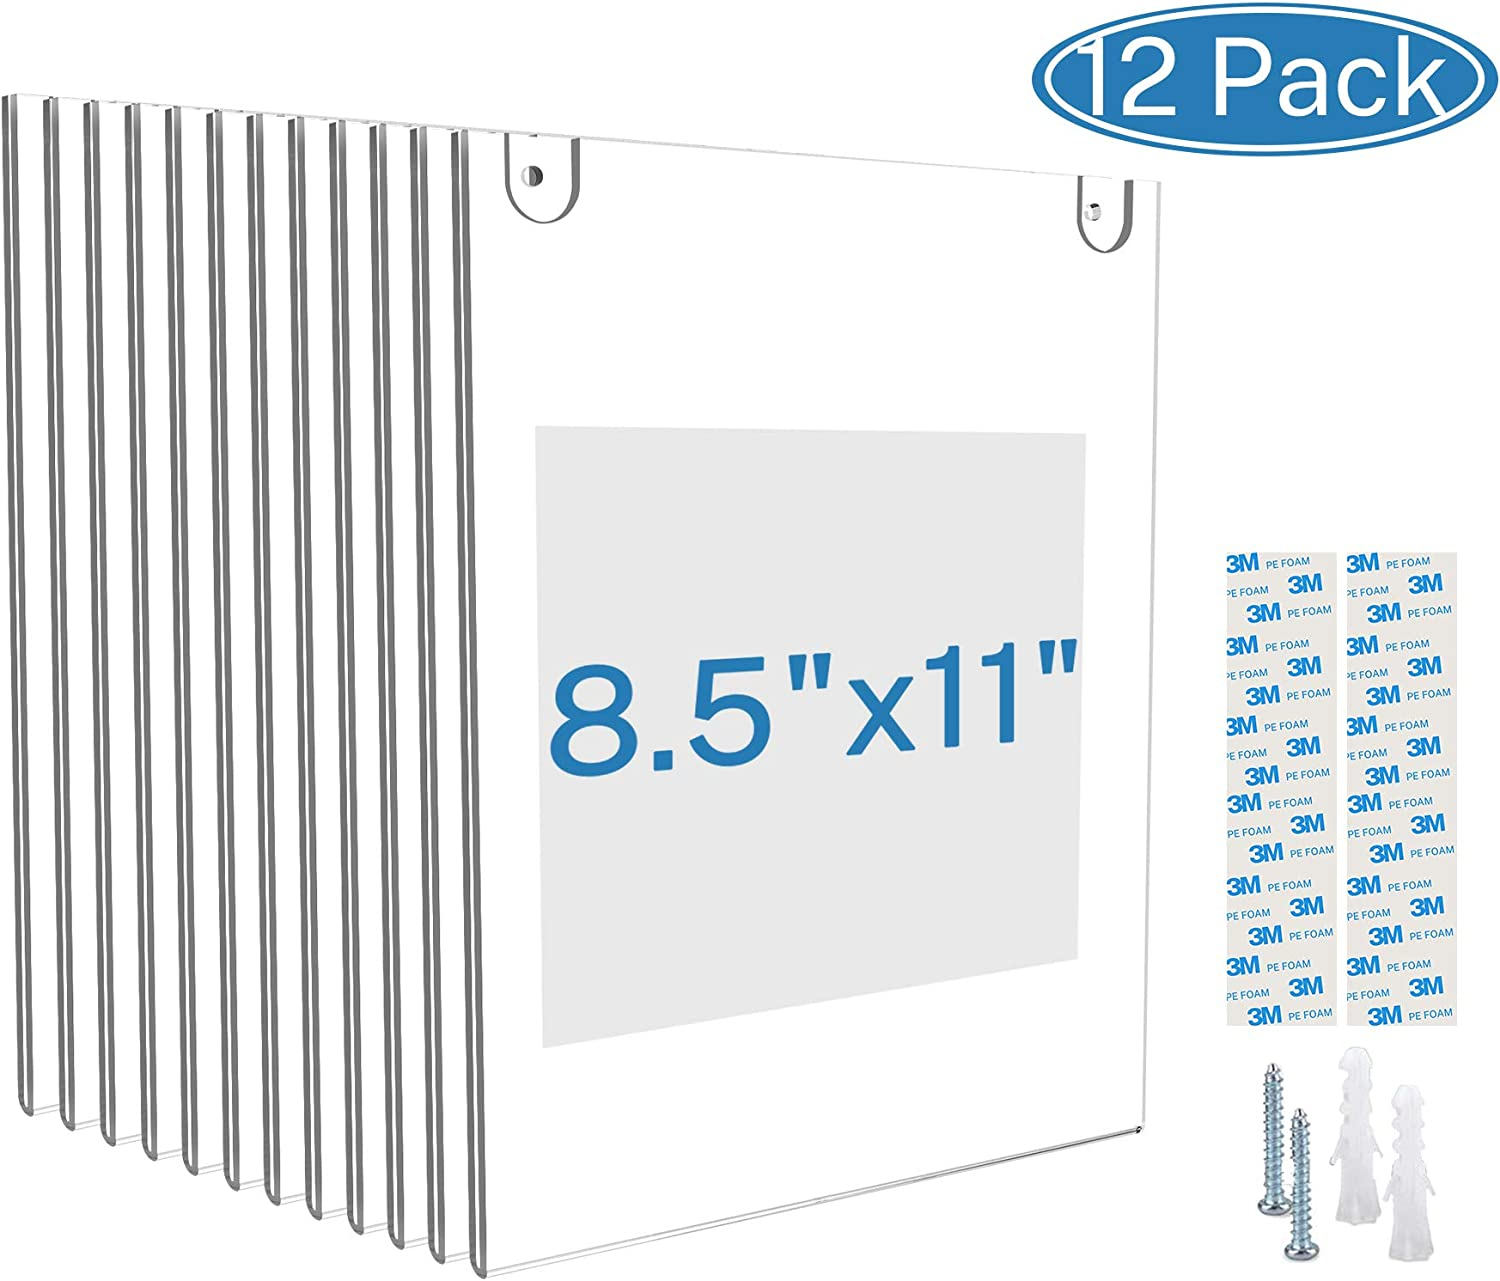 MaxGear Acrylic Sign Holder 8.5 X 11 Wall Mount Sign Holder Clear Plastic Picture Frames with 3M Tape Adhesive and Screws for Office, Home, Store, Restaurant - Vertical, 12 Pack